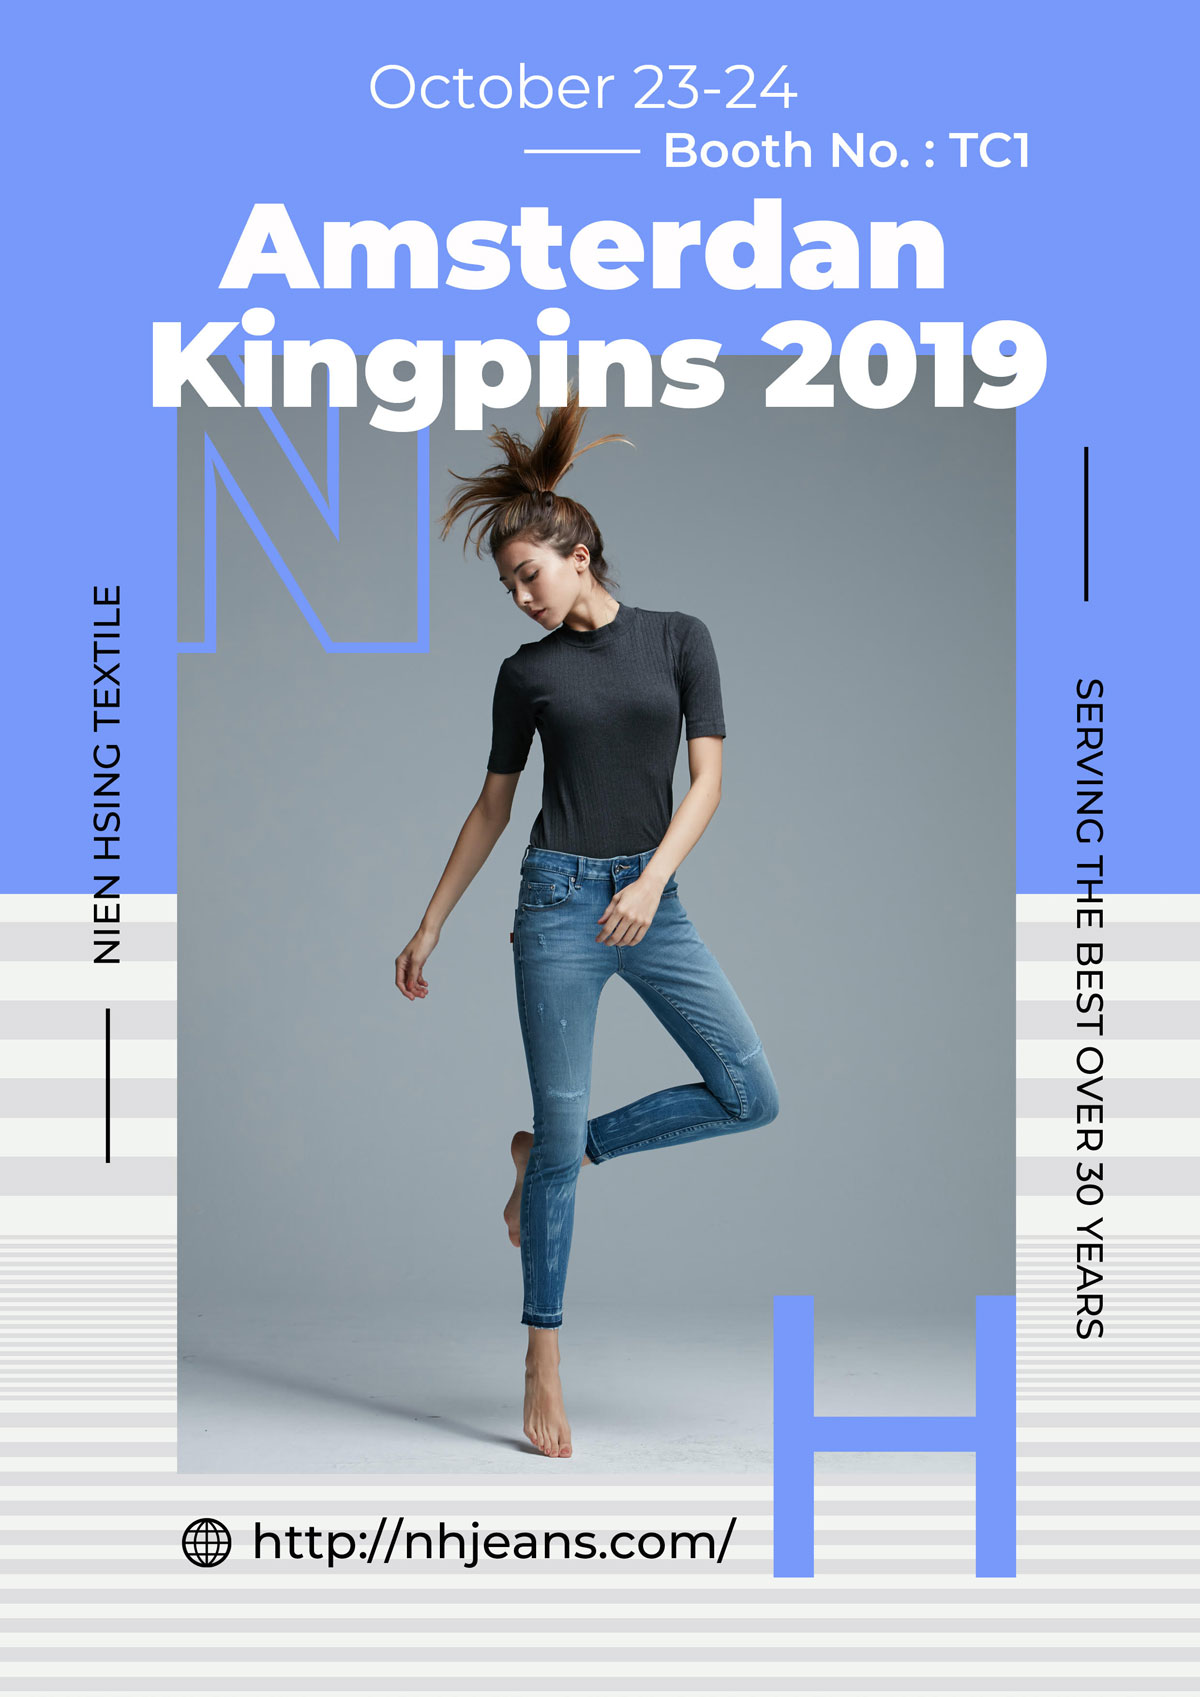 The-Kingpins-Show-on-October-23-24